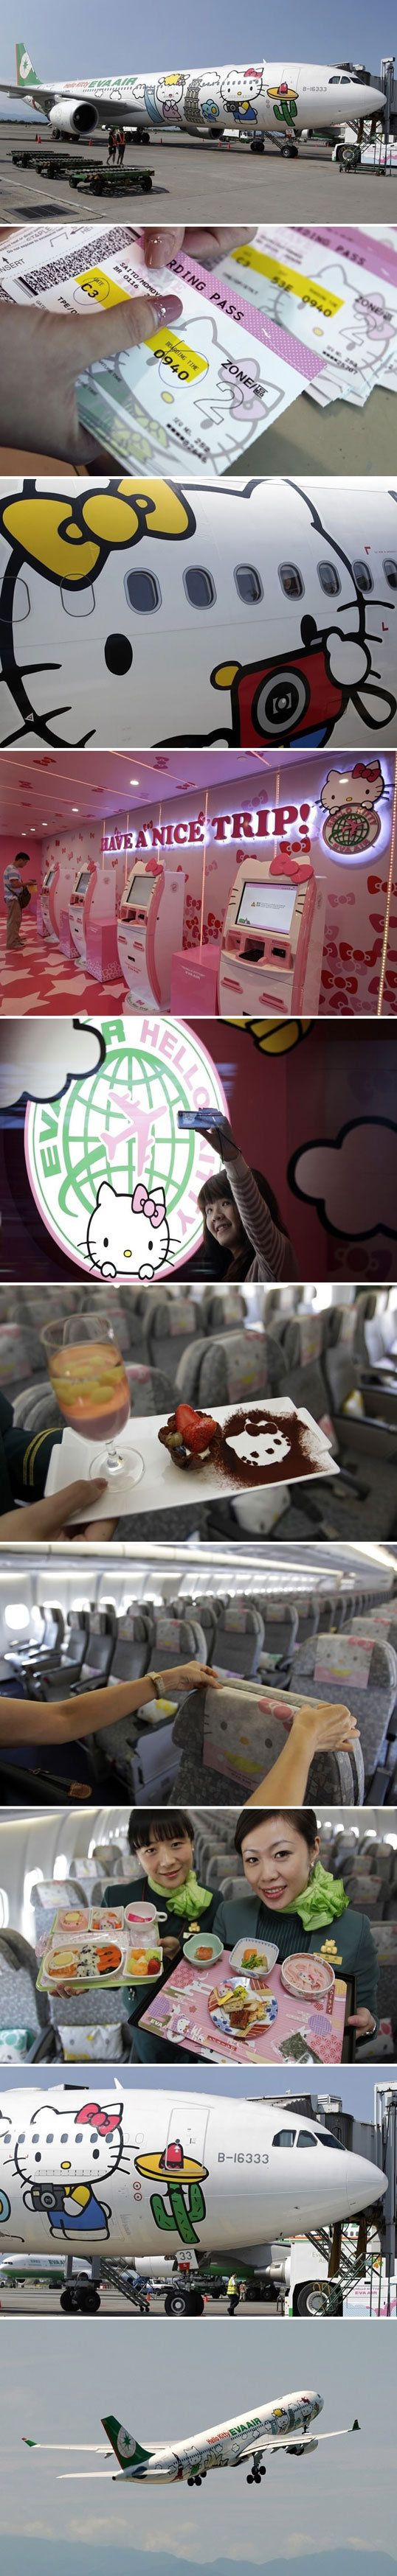 Hello Kitty Airline!!!!! ♥